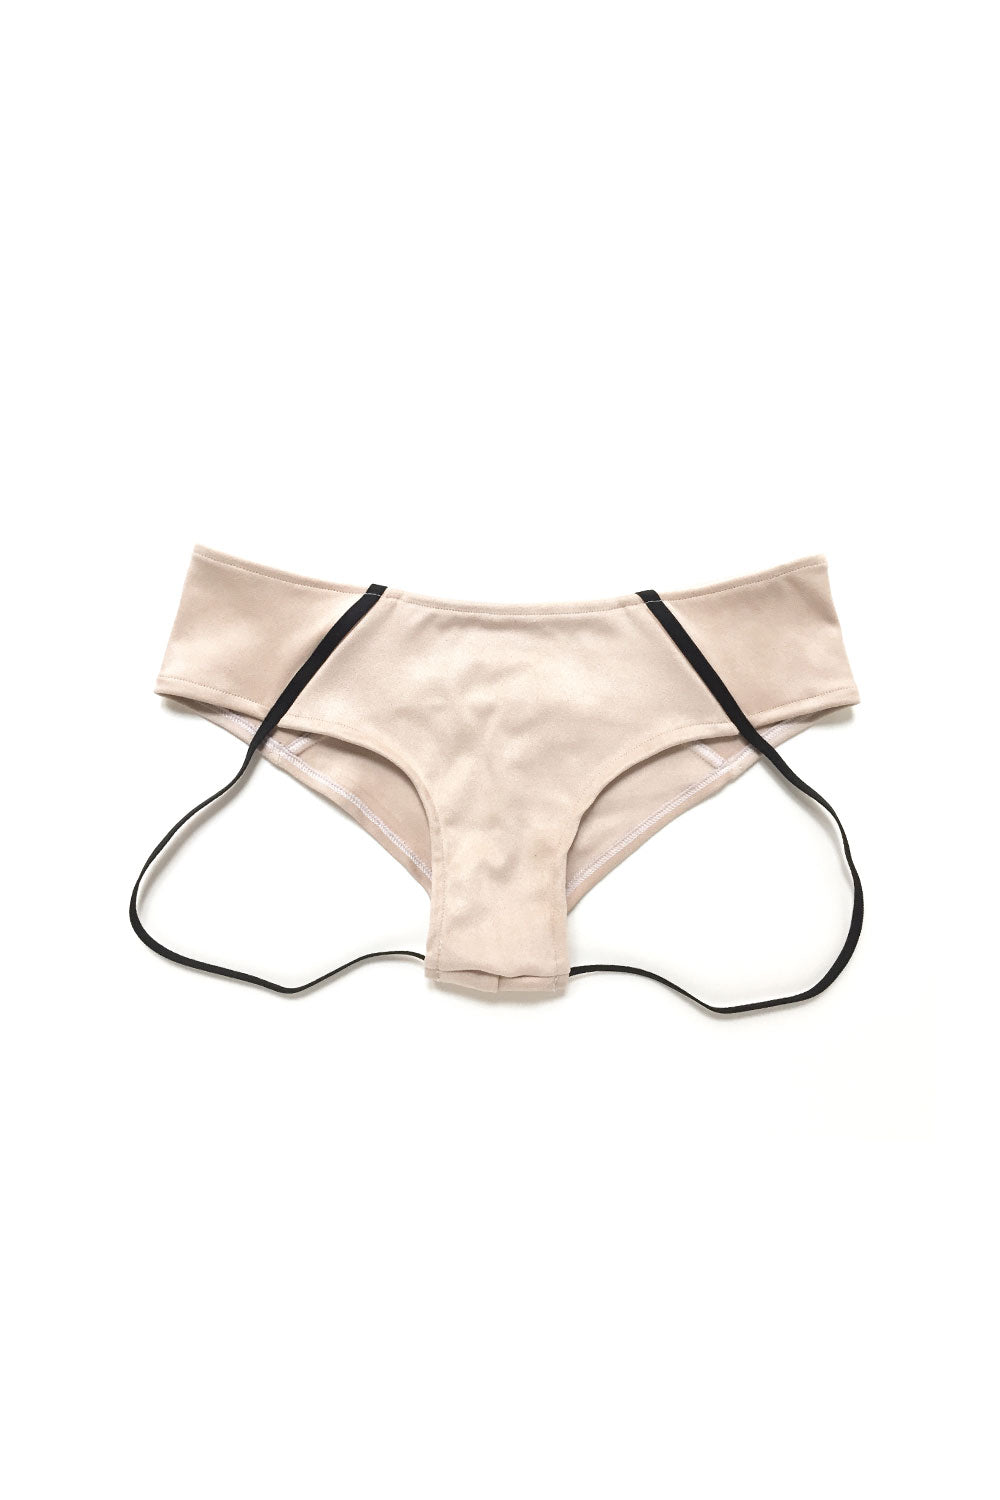 Nude Suede Pole Bottom Shorts with Garter